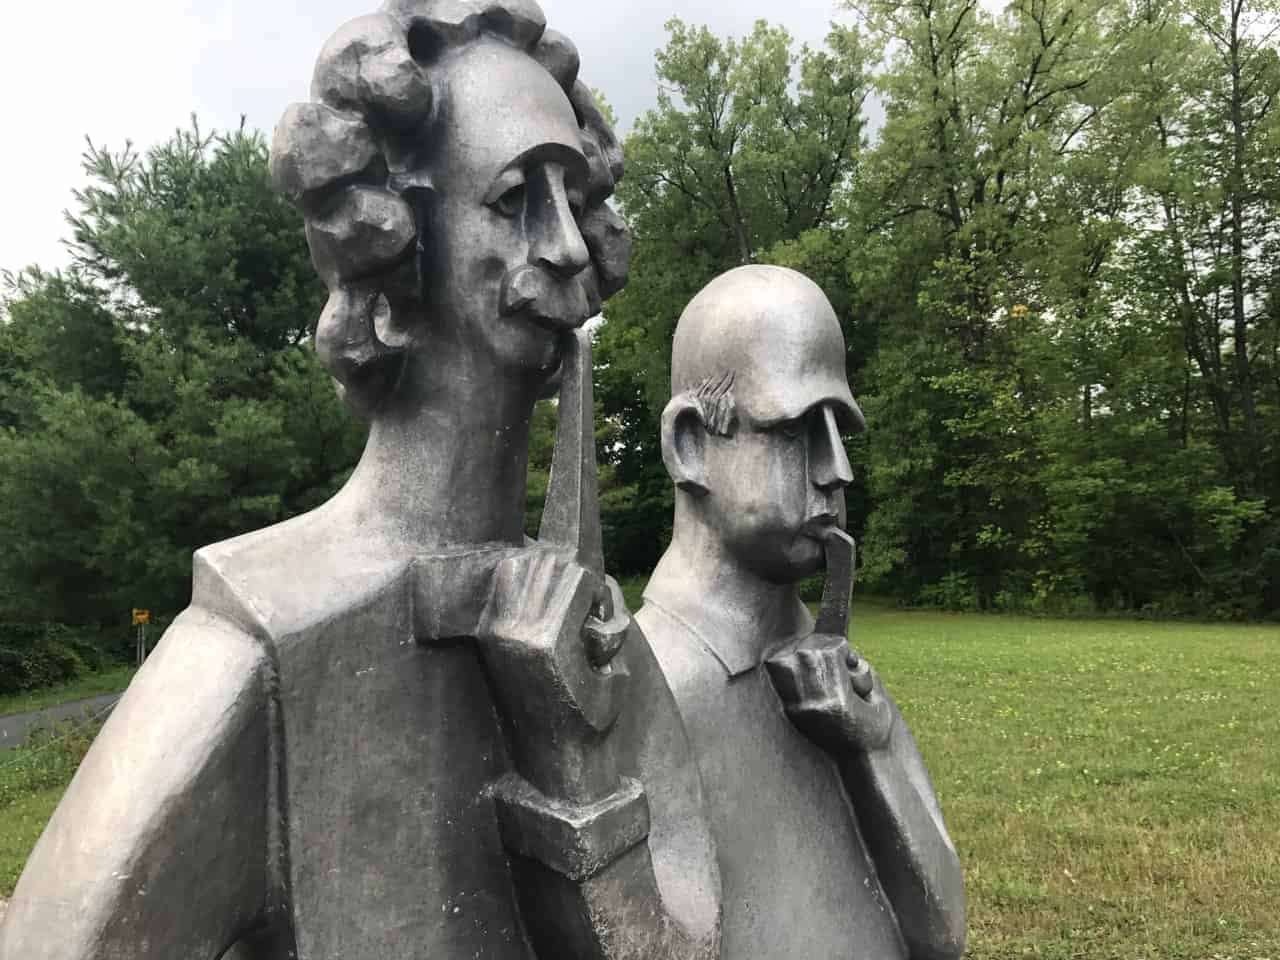 Vladimir Lemport's sculpture of Albert Einstein and Niels Bohr greets visitors to Turn Park. Photo by Kate Abbott